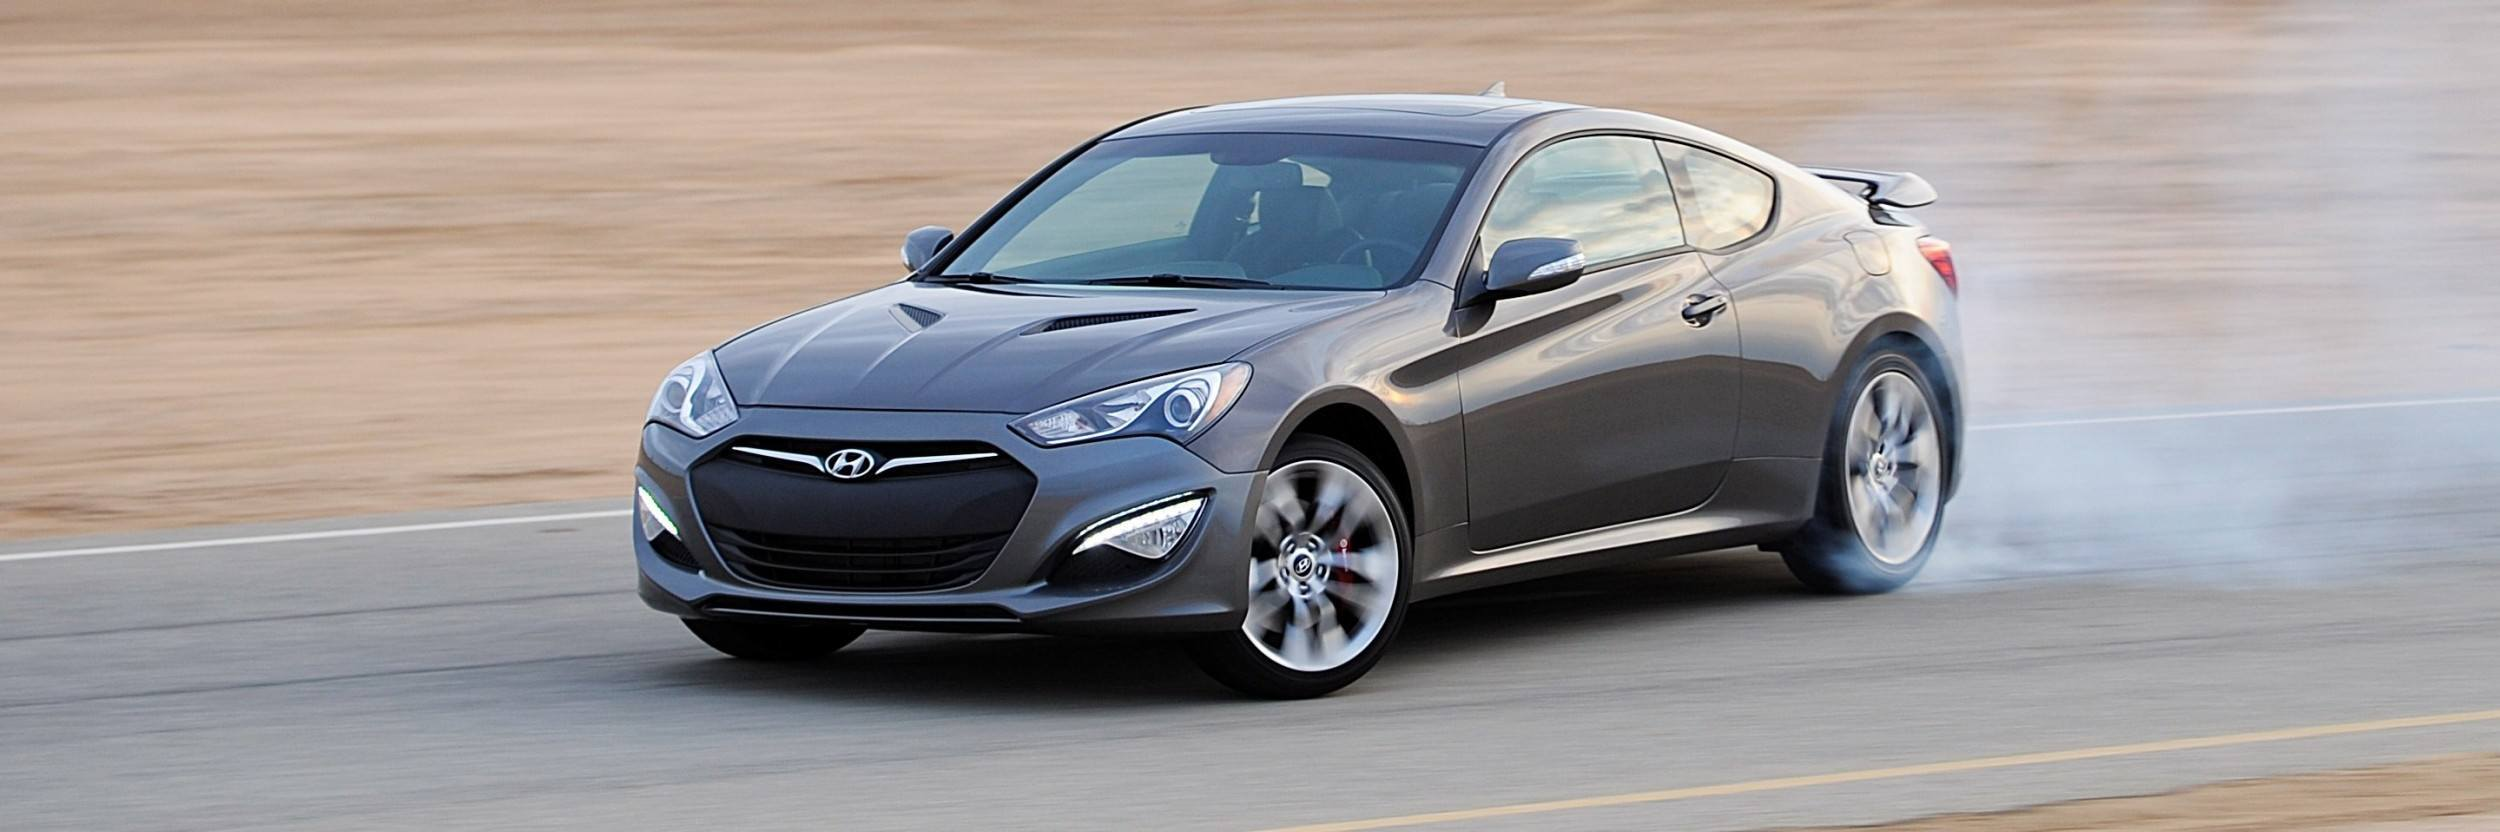 Genesis Coupe 2014 Blue Www Imgkid Com The Image Kid Has It